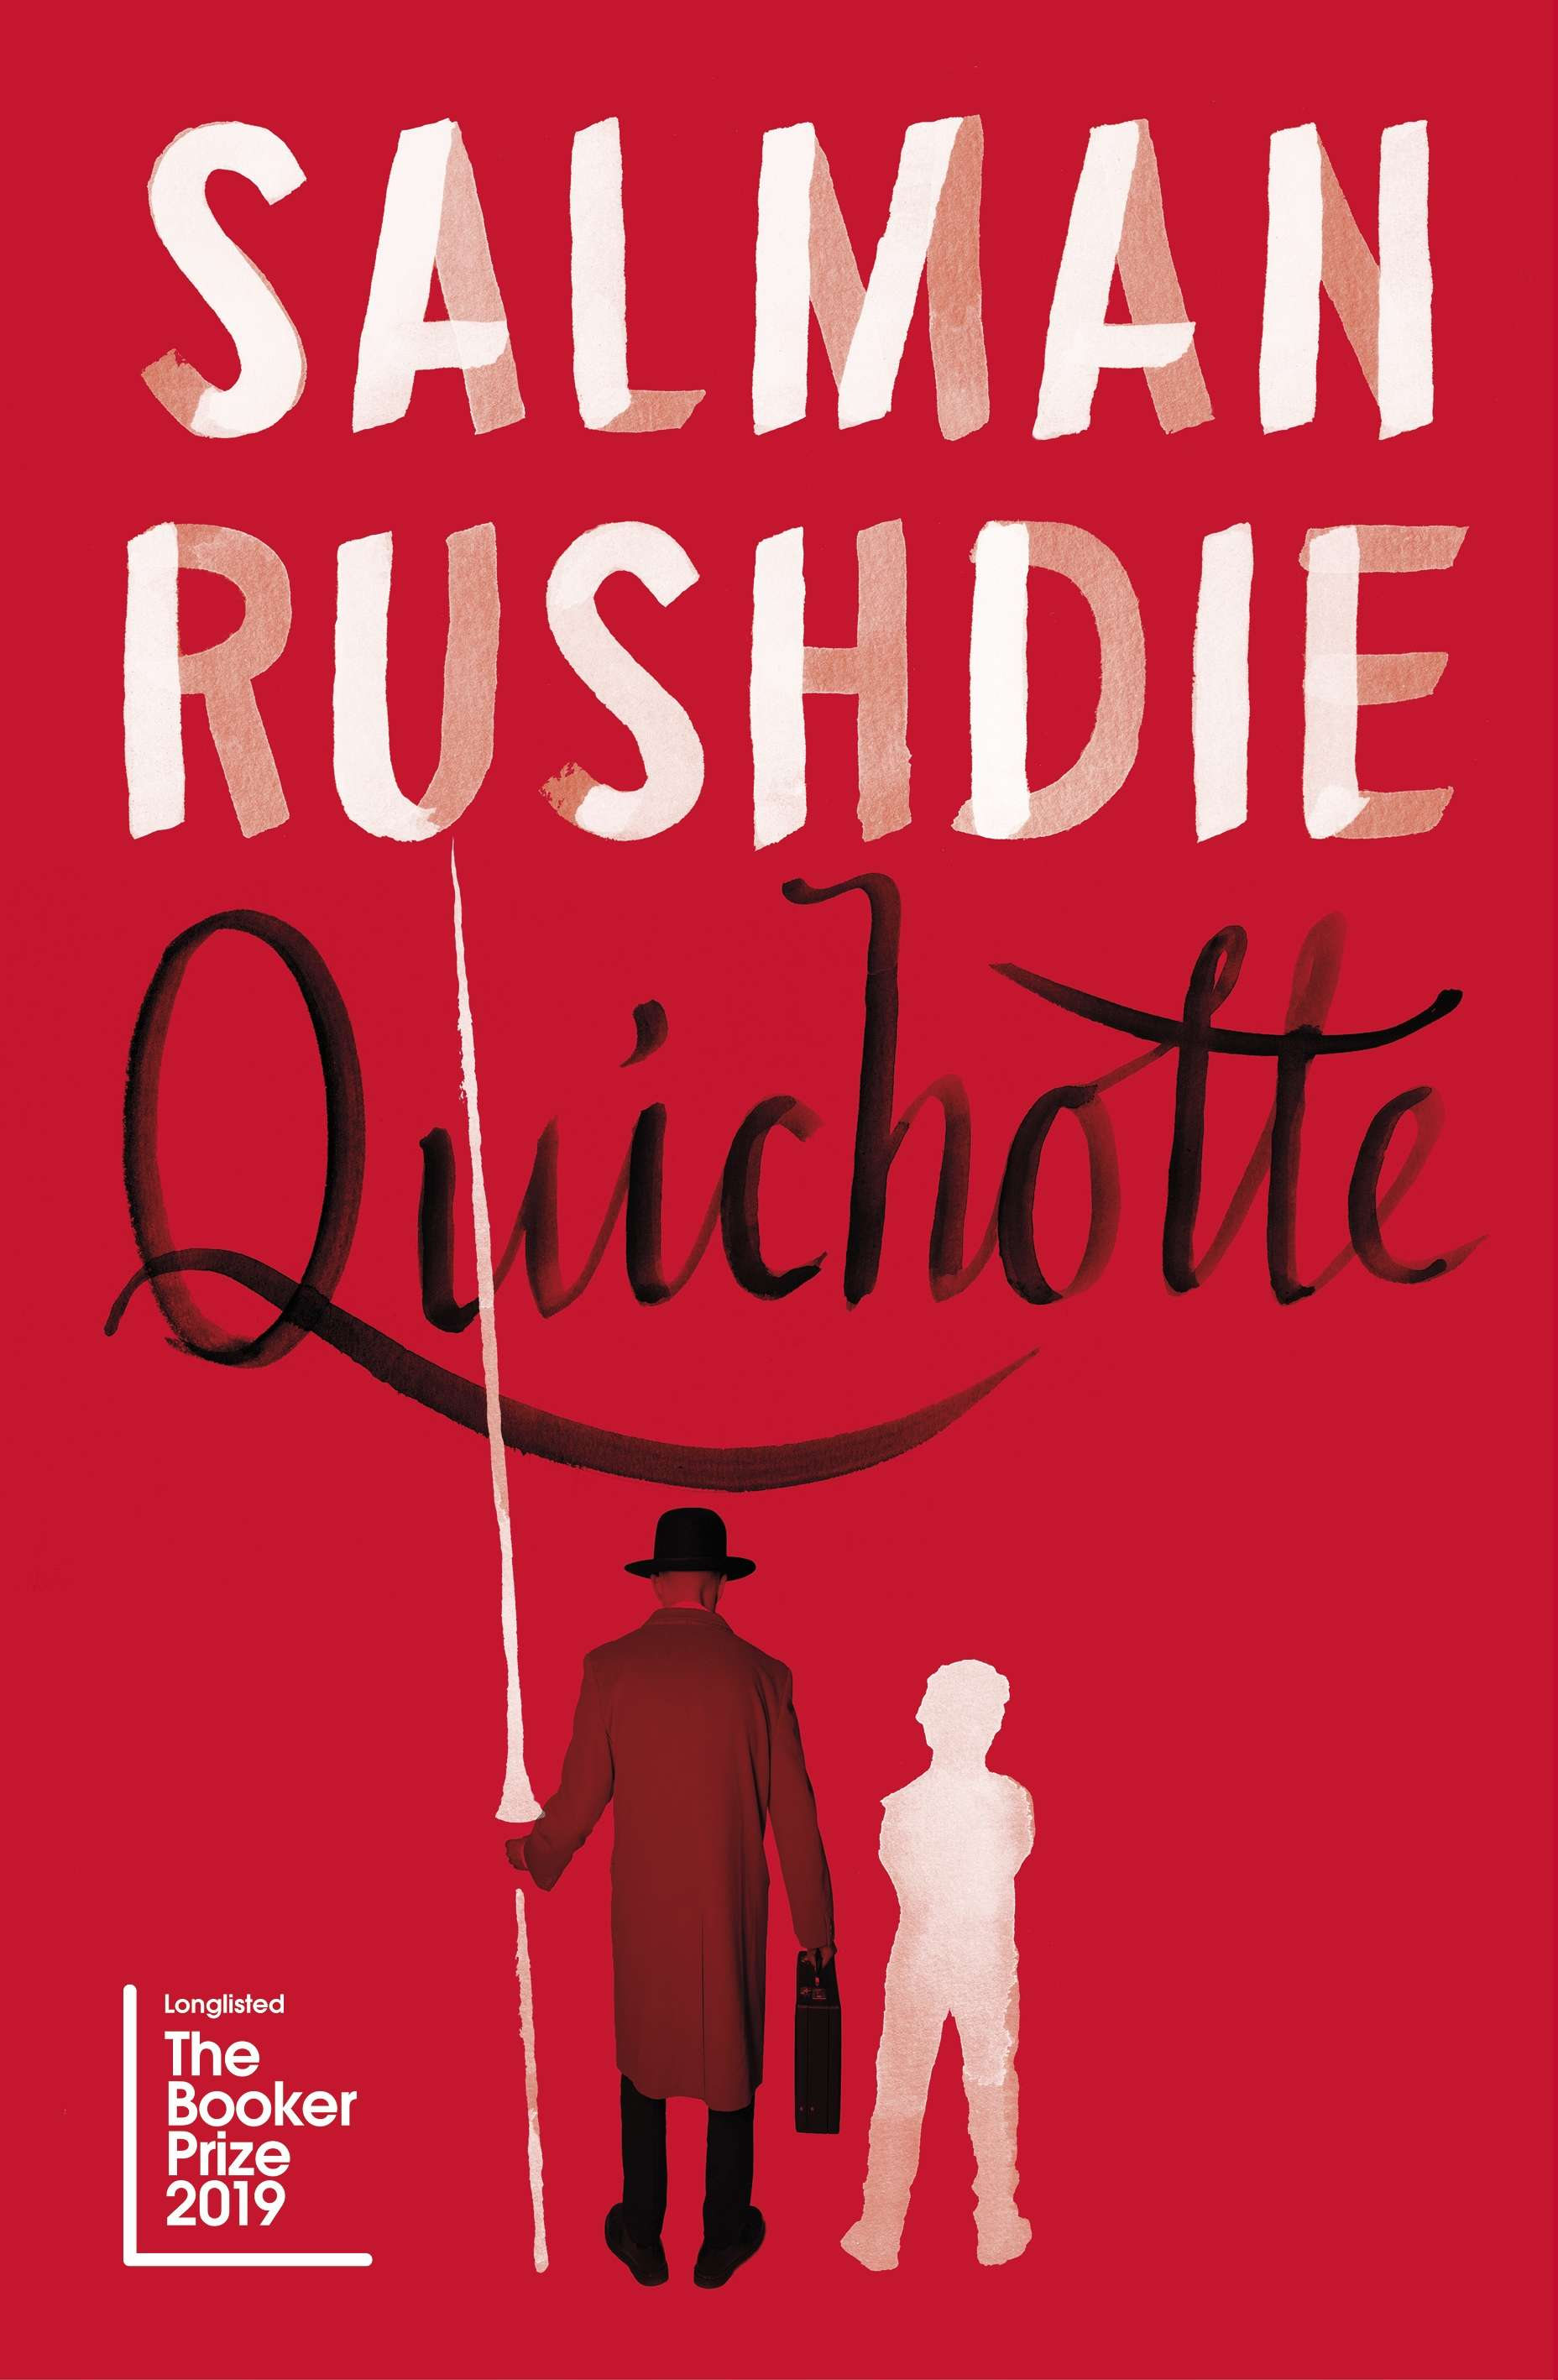 Quichotte by Salman Rushdie book cover featuring a man in a bowler hat and long coat and the outline of a child